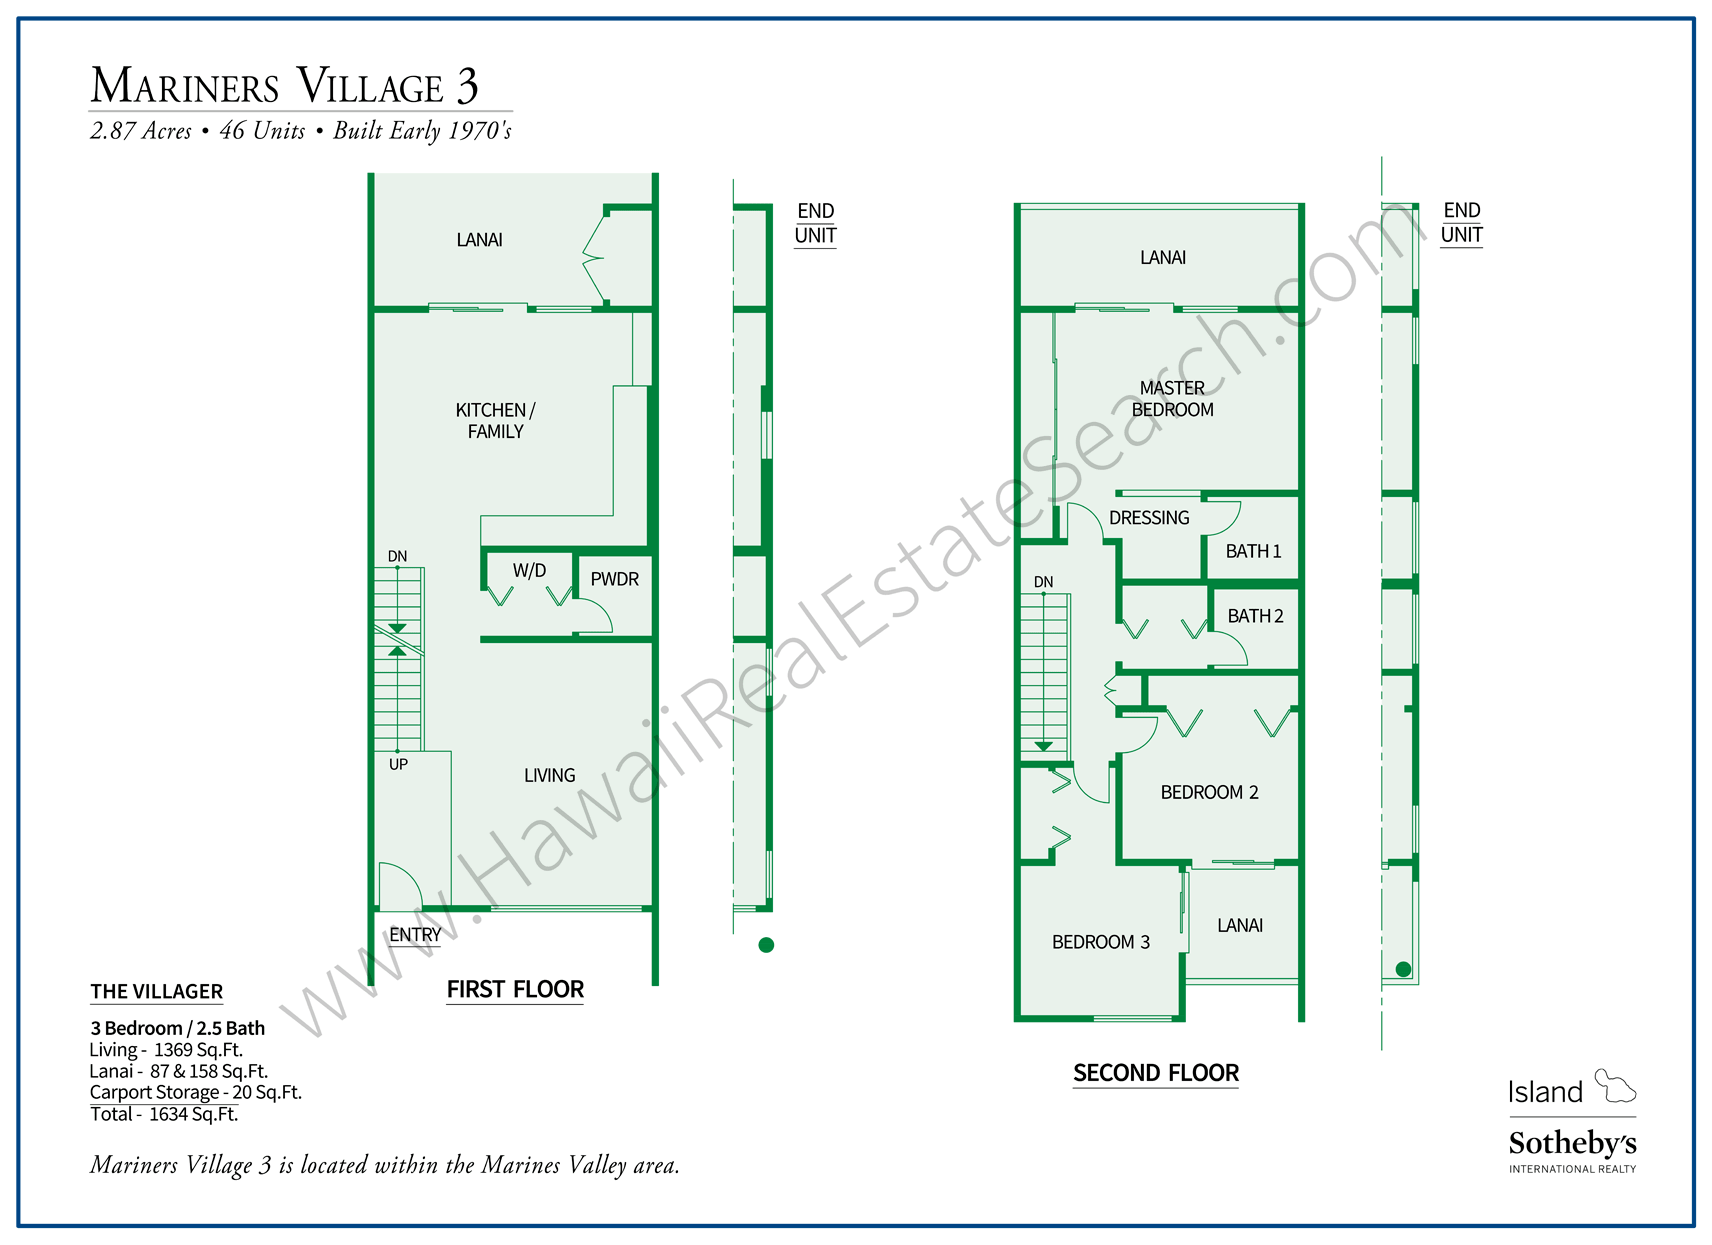 Floor Plan Villager Mariners Village